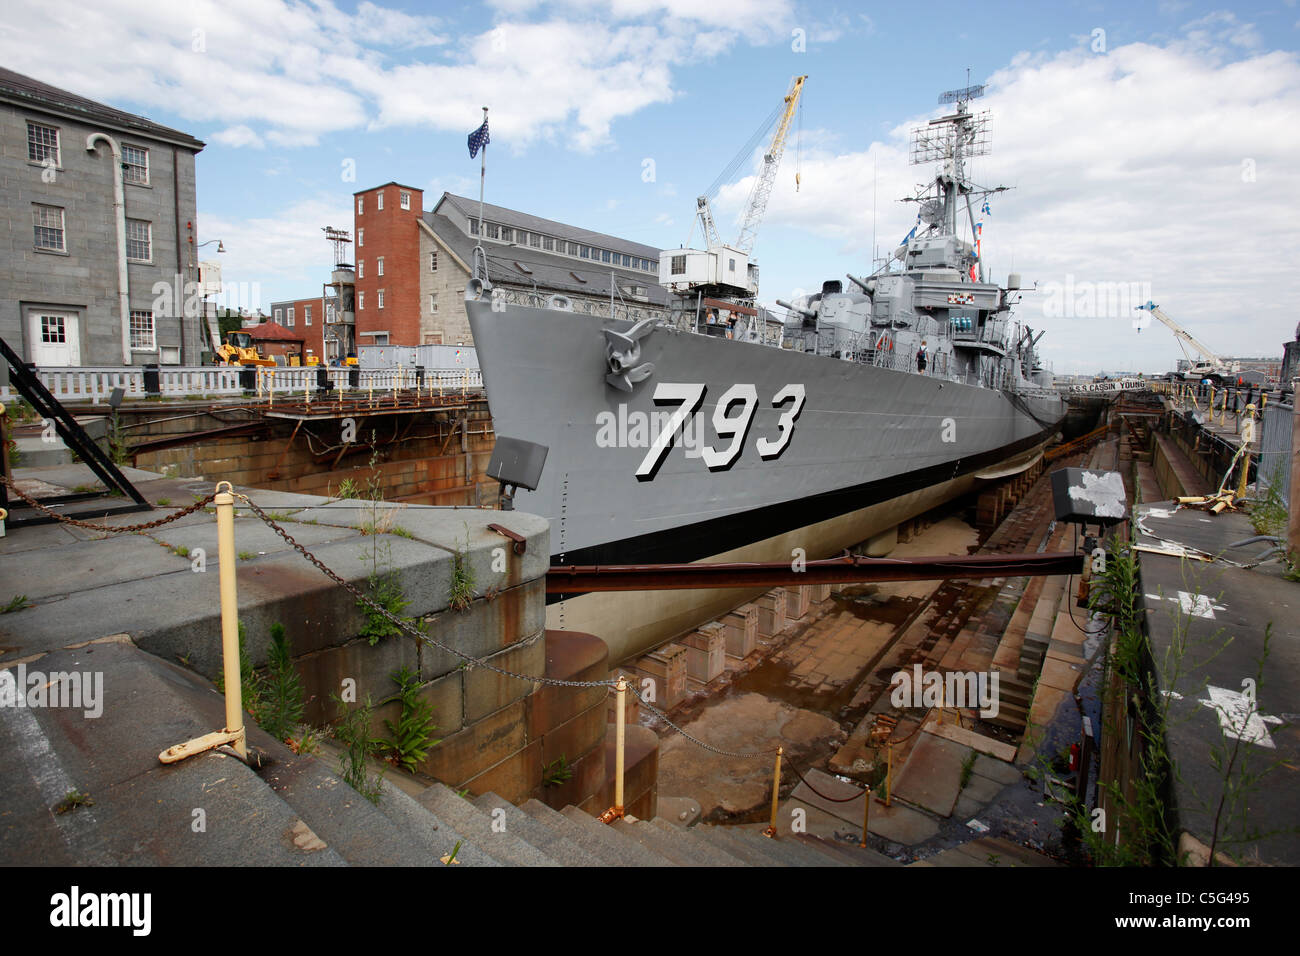 US Navy World War II destroyer USS Cassin Young in dry dock at the Charlestown Navy Yard in Boston, Massachusetts - Stock Image